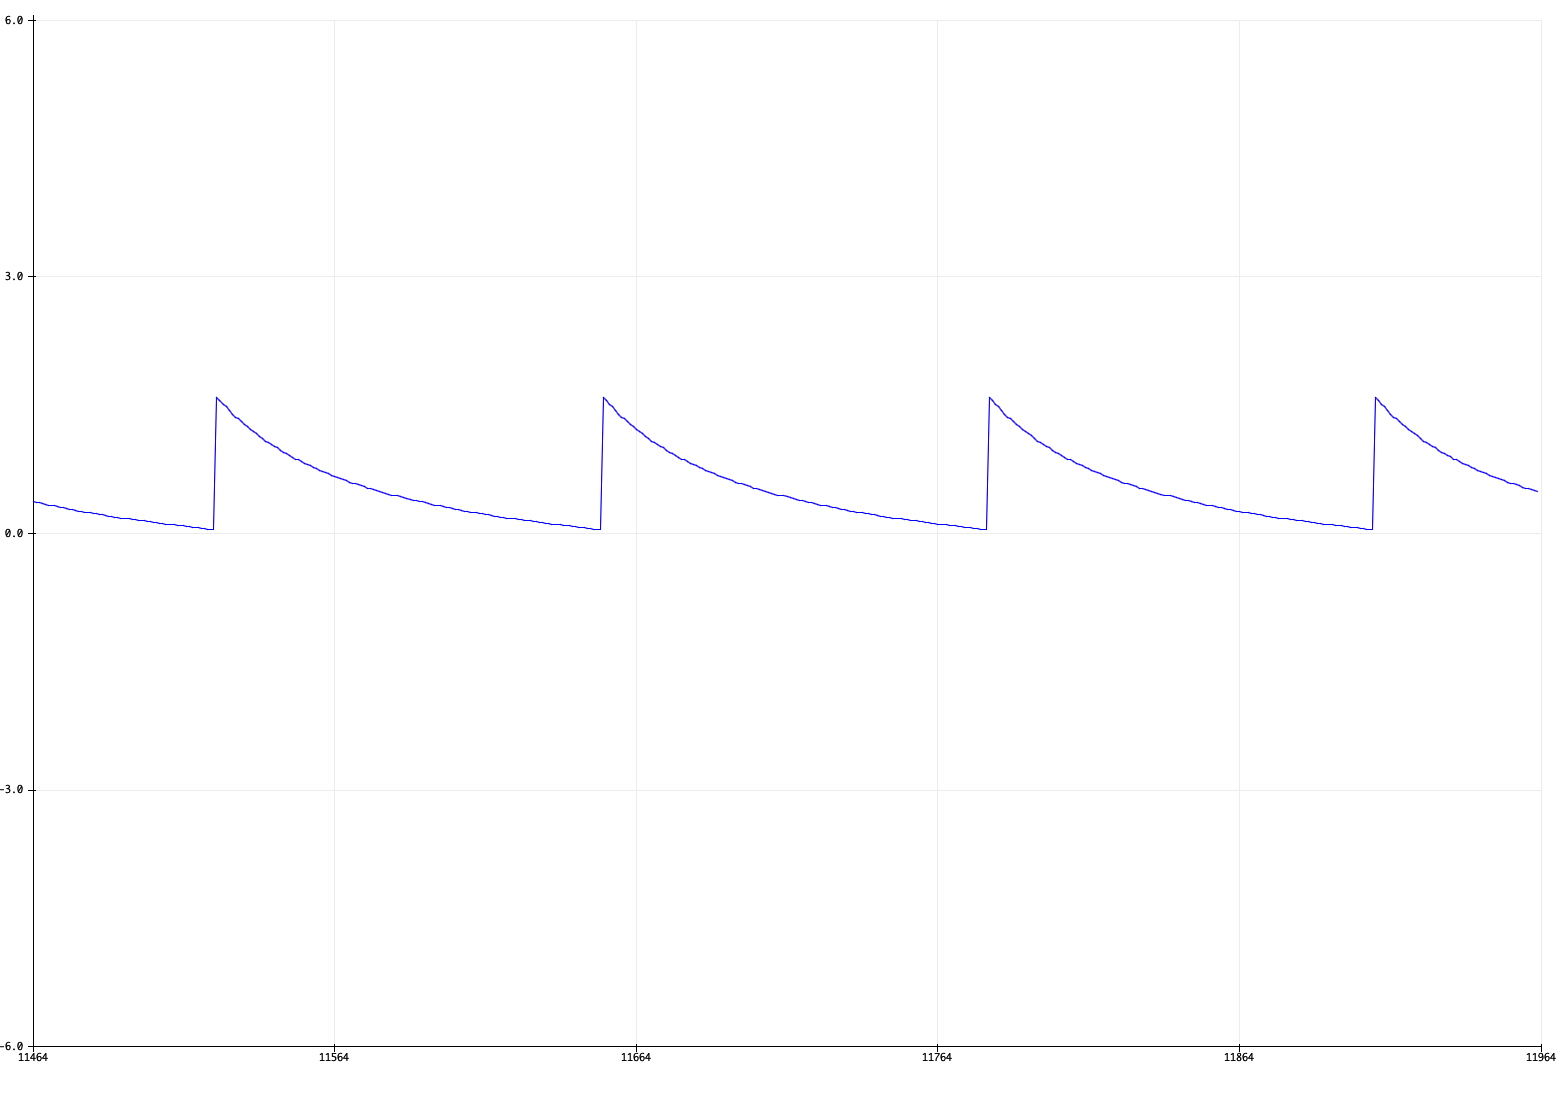 adafruit_products_log_curve.png